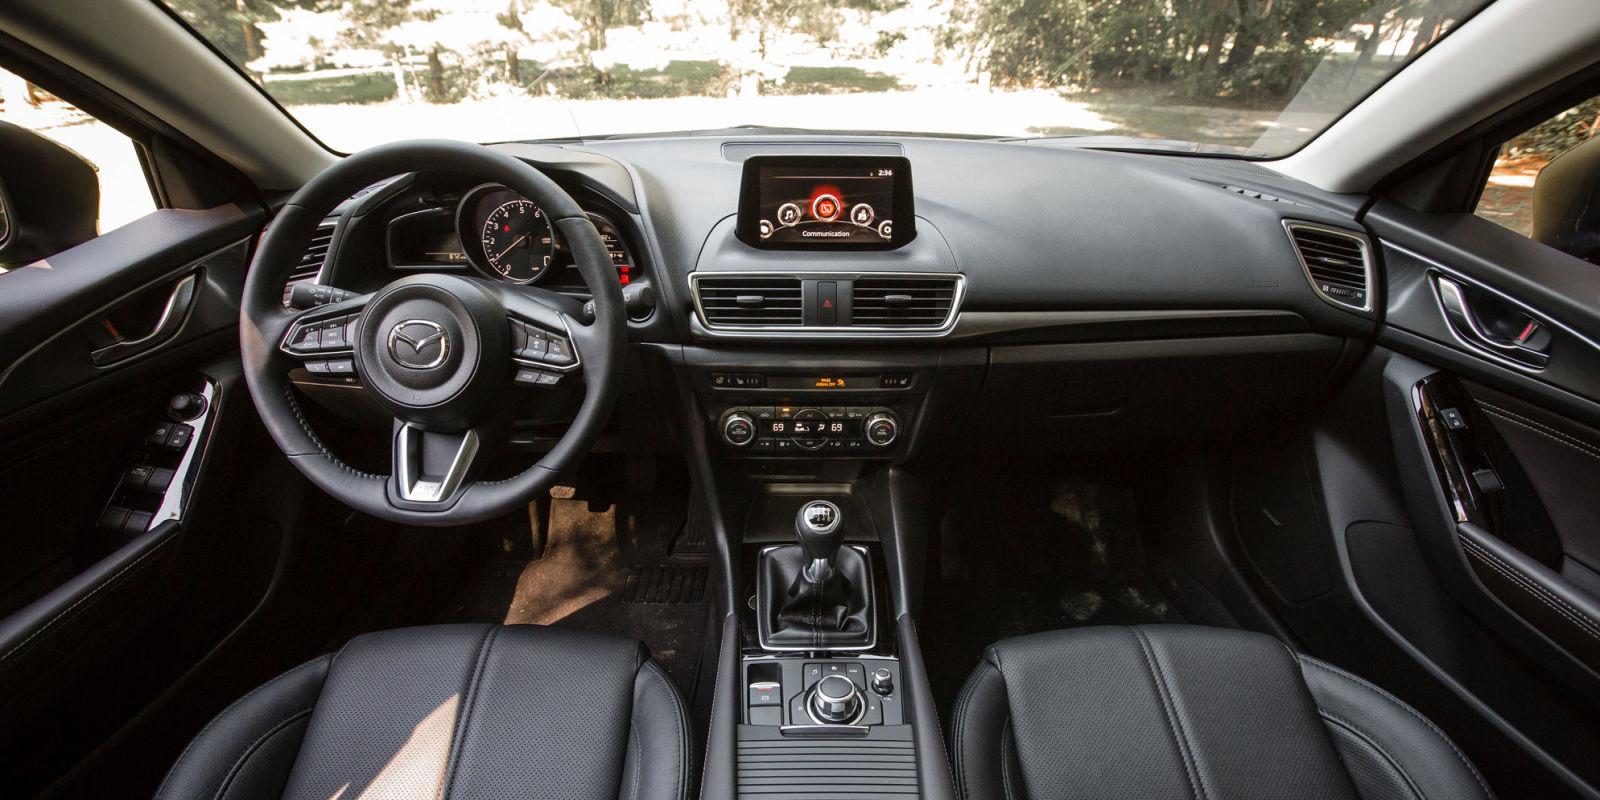 The Best Car Interior Available For Under 30000 Is In A